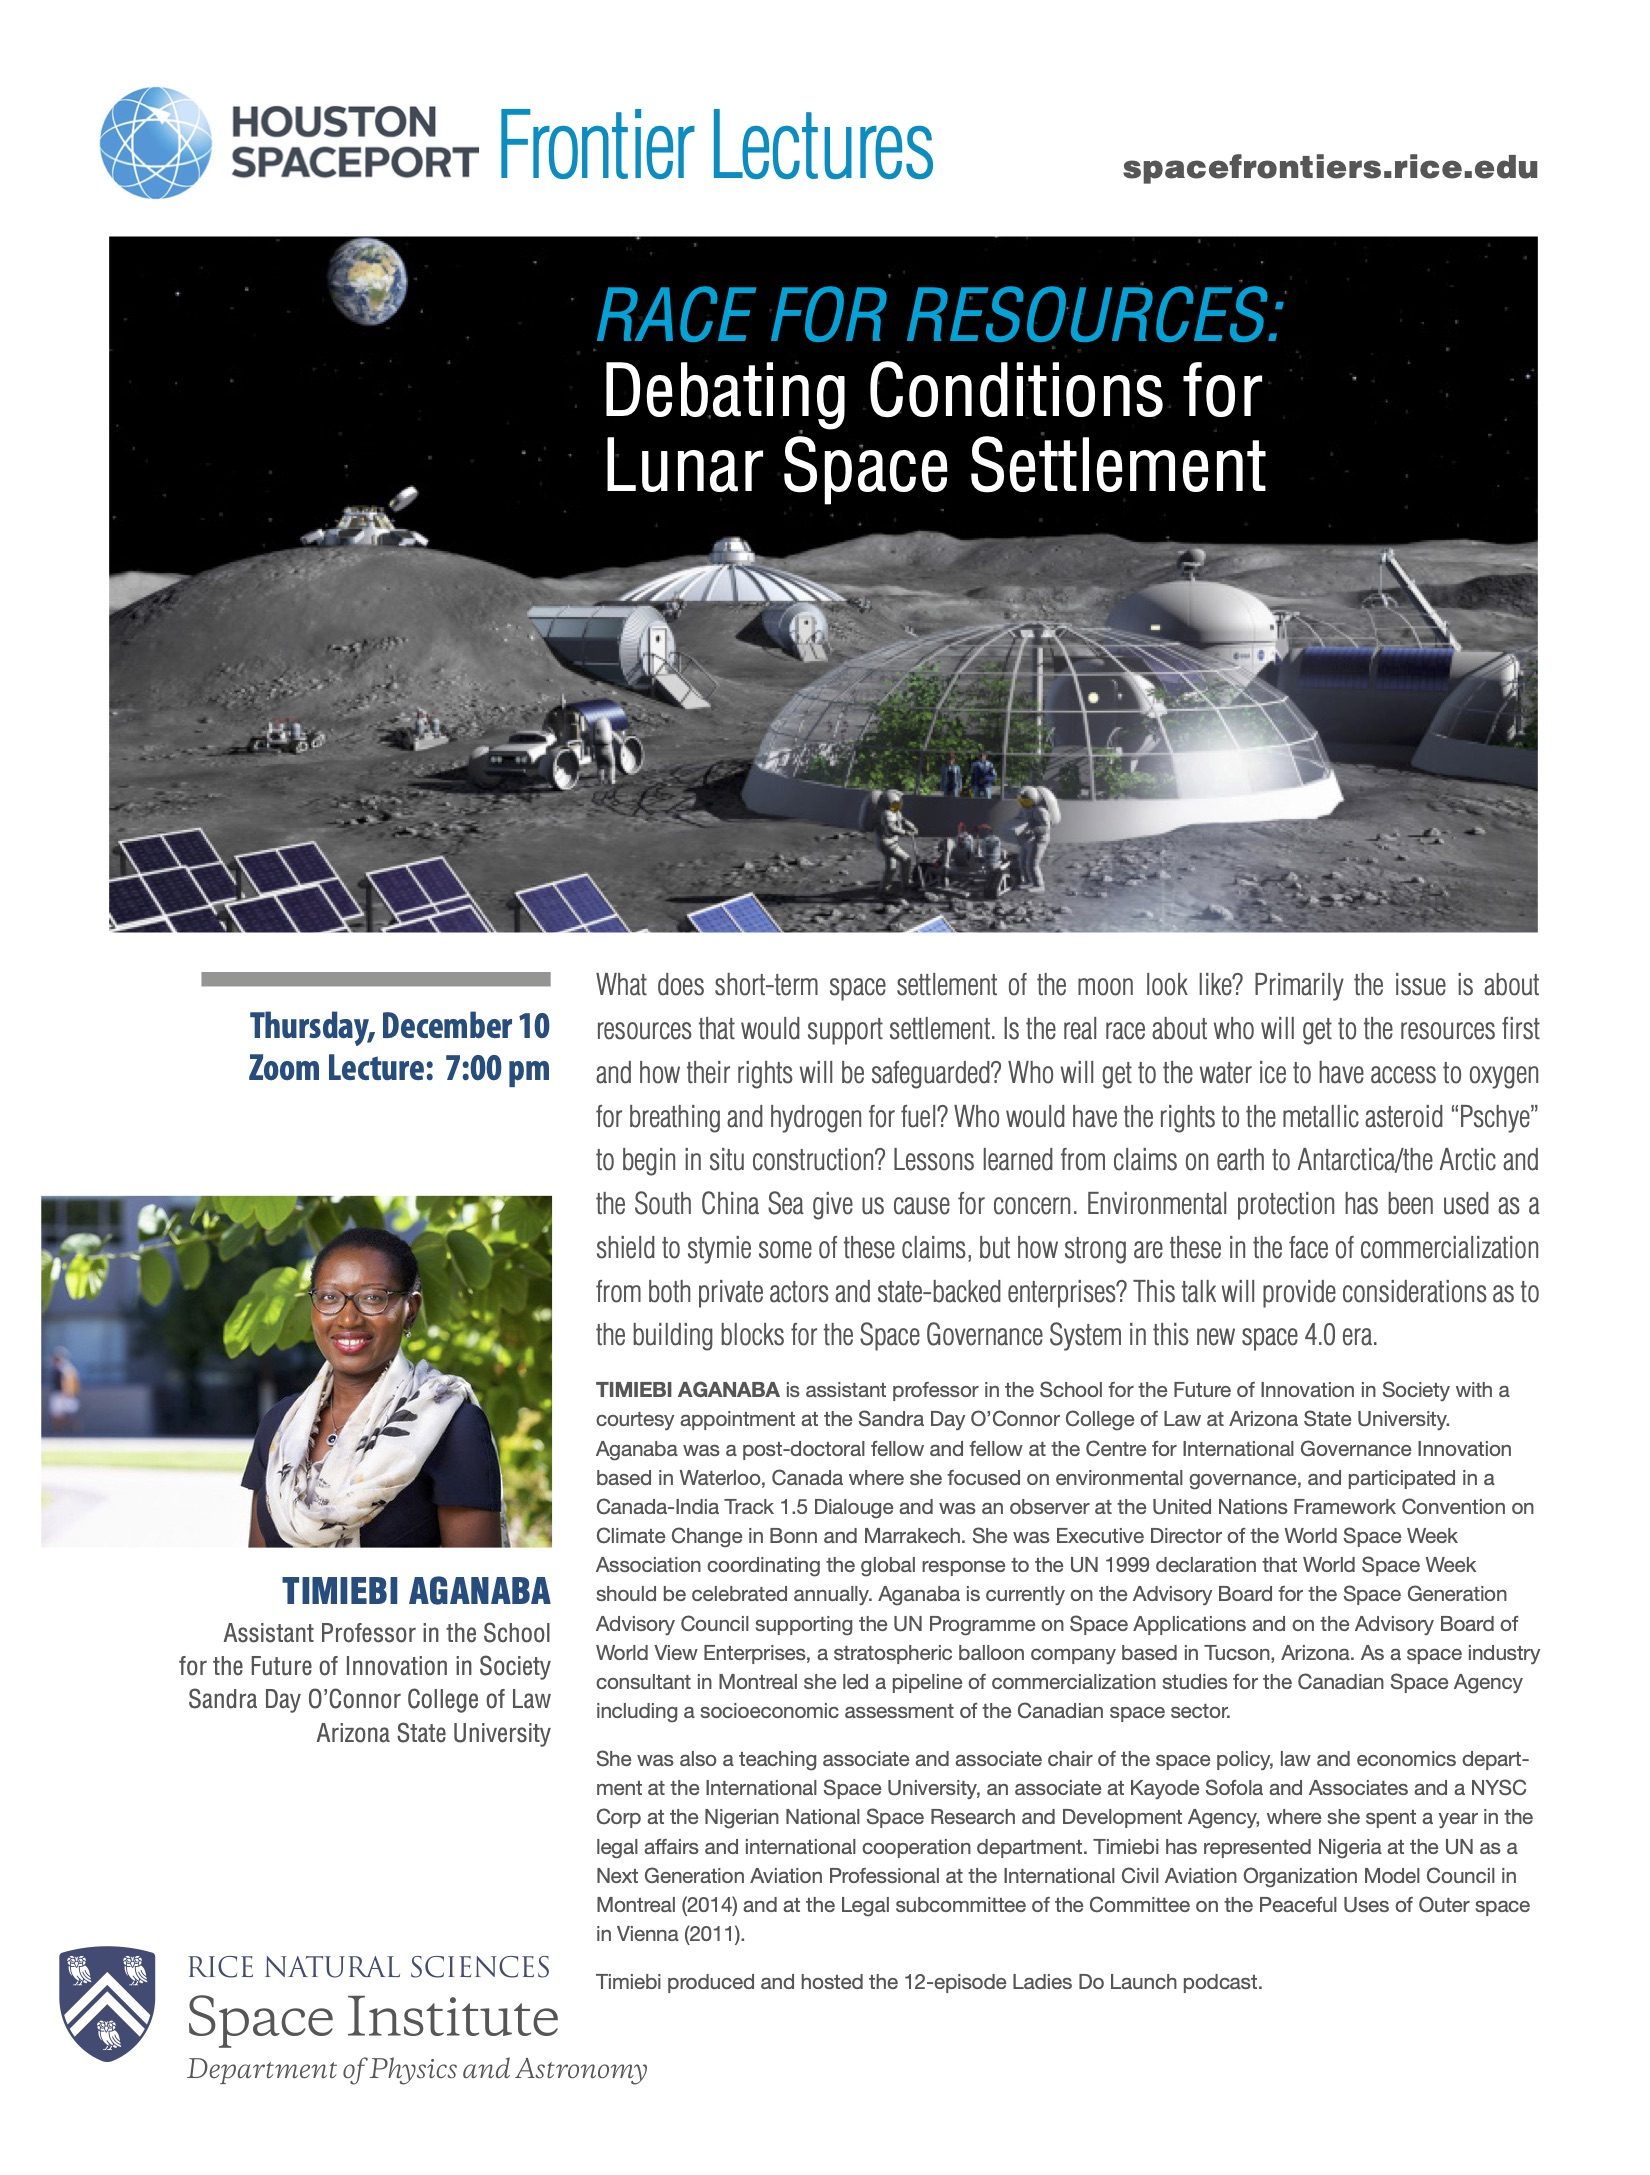 Timiebi Aganaba's Spaceport lecture poster